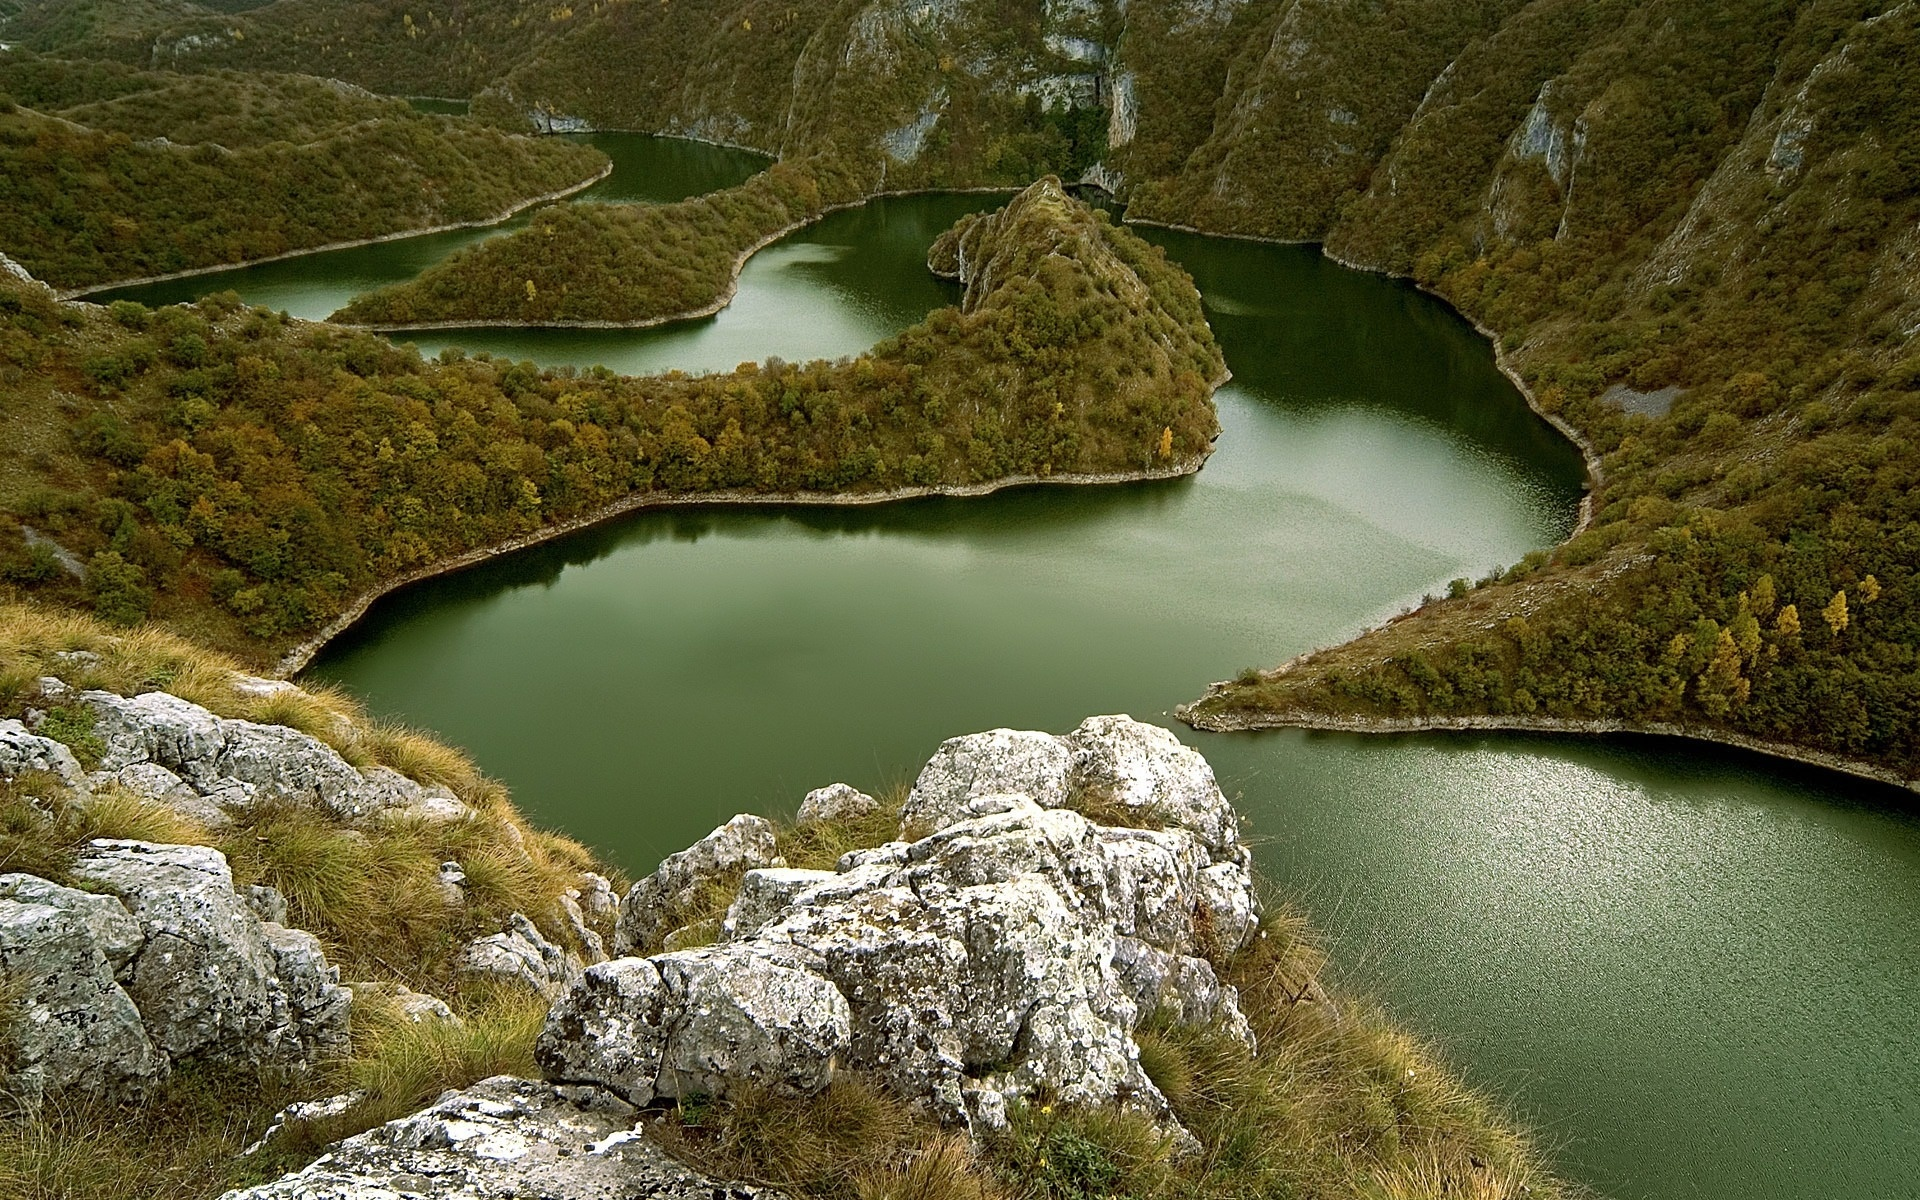 Wallpaper river mountains serbia meander sinuous watercourse 1920x1200